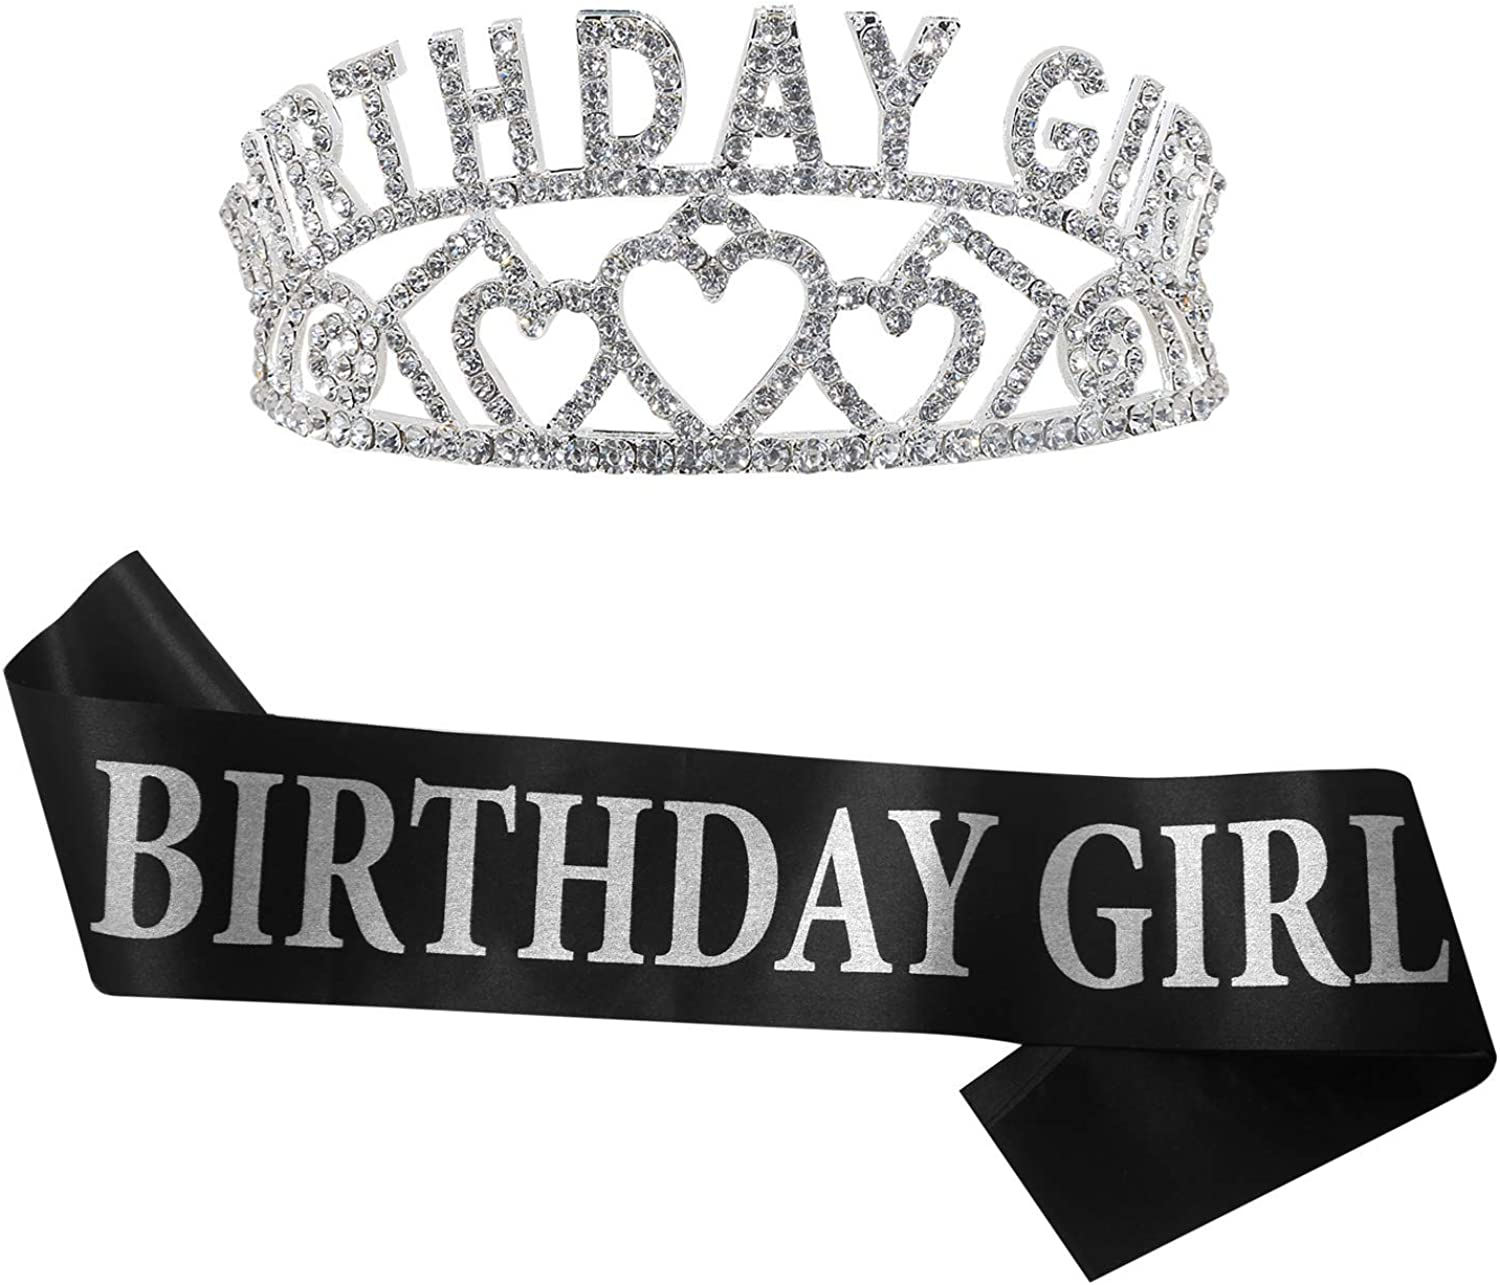 B4MBOO Best Quality Tiara and Birthday Queen Sash Favors 2-Pack Decorations Cute Satin Sash and Crown Crystal Rhinestone Birthday Tiara for Girls and Ladies| Happy Birthday Party Supplies